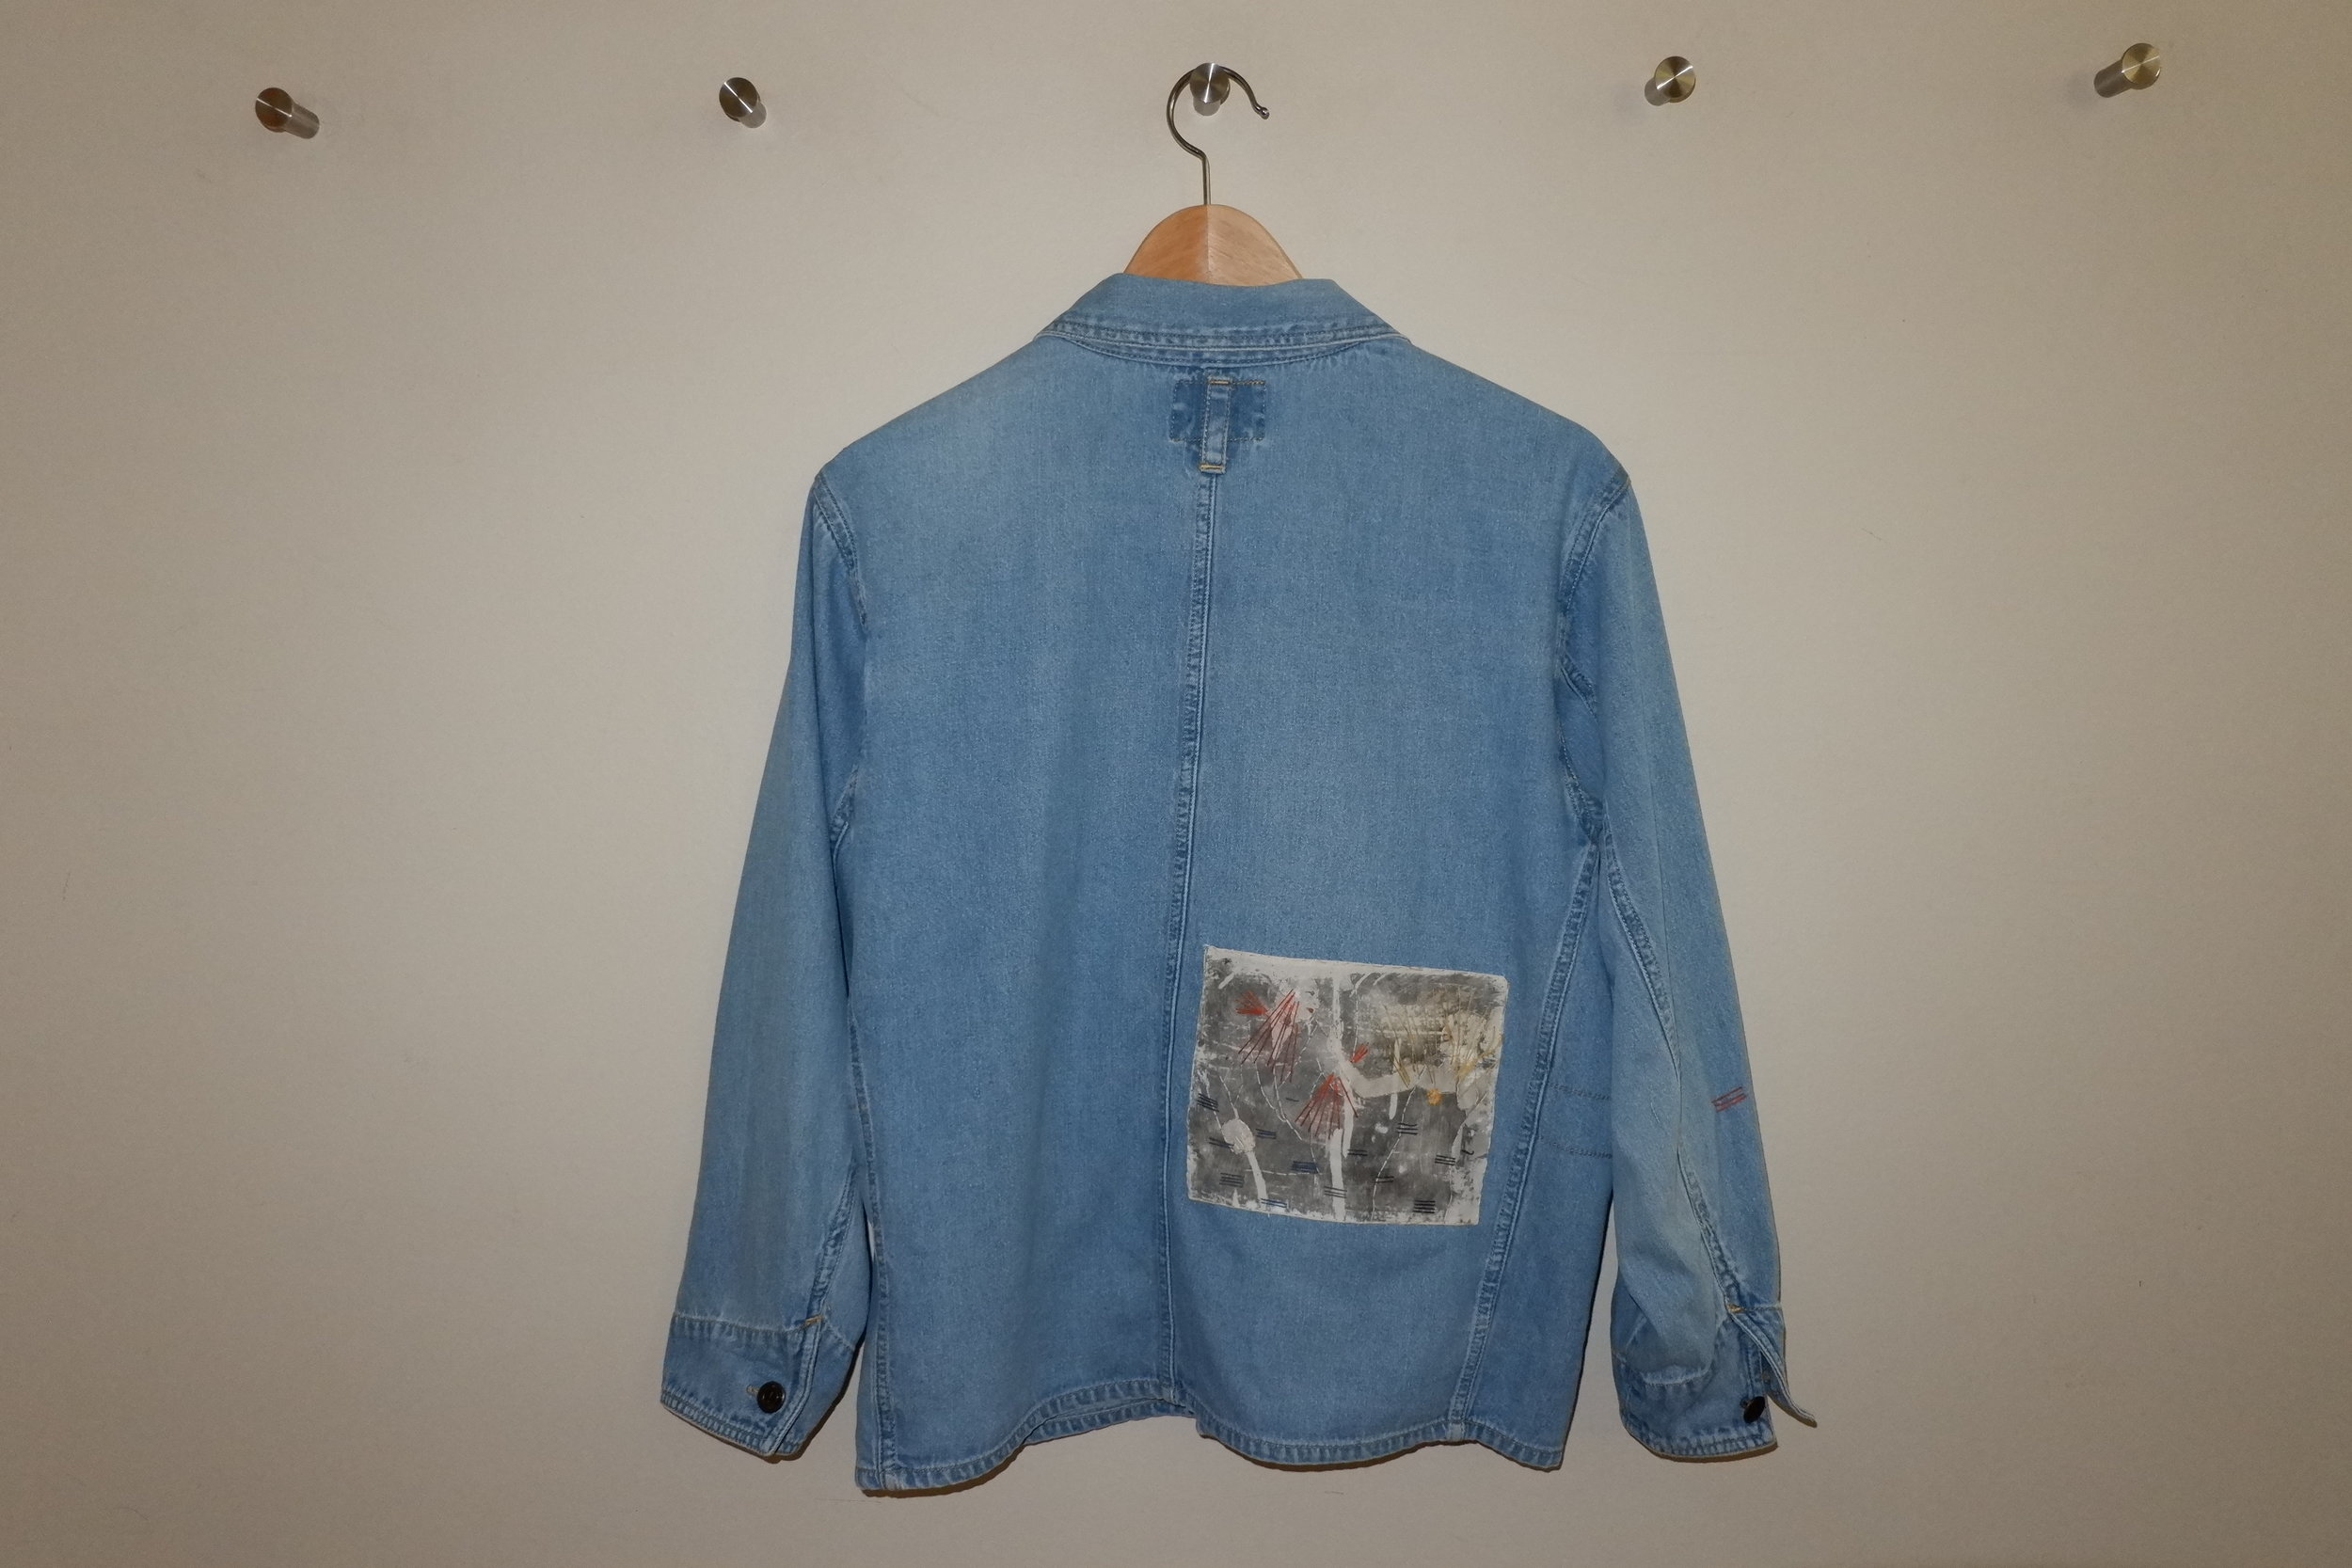 DANCING COUPLE DENIM JACKET